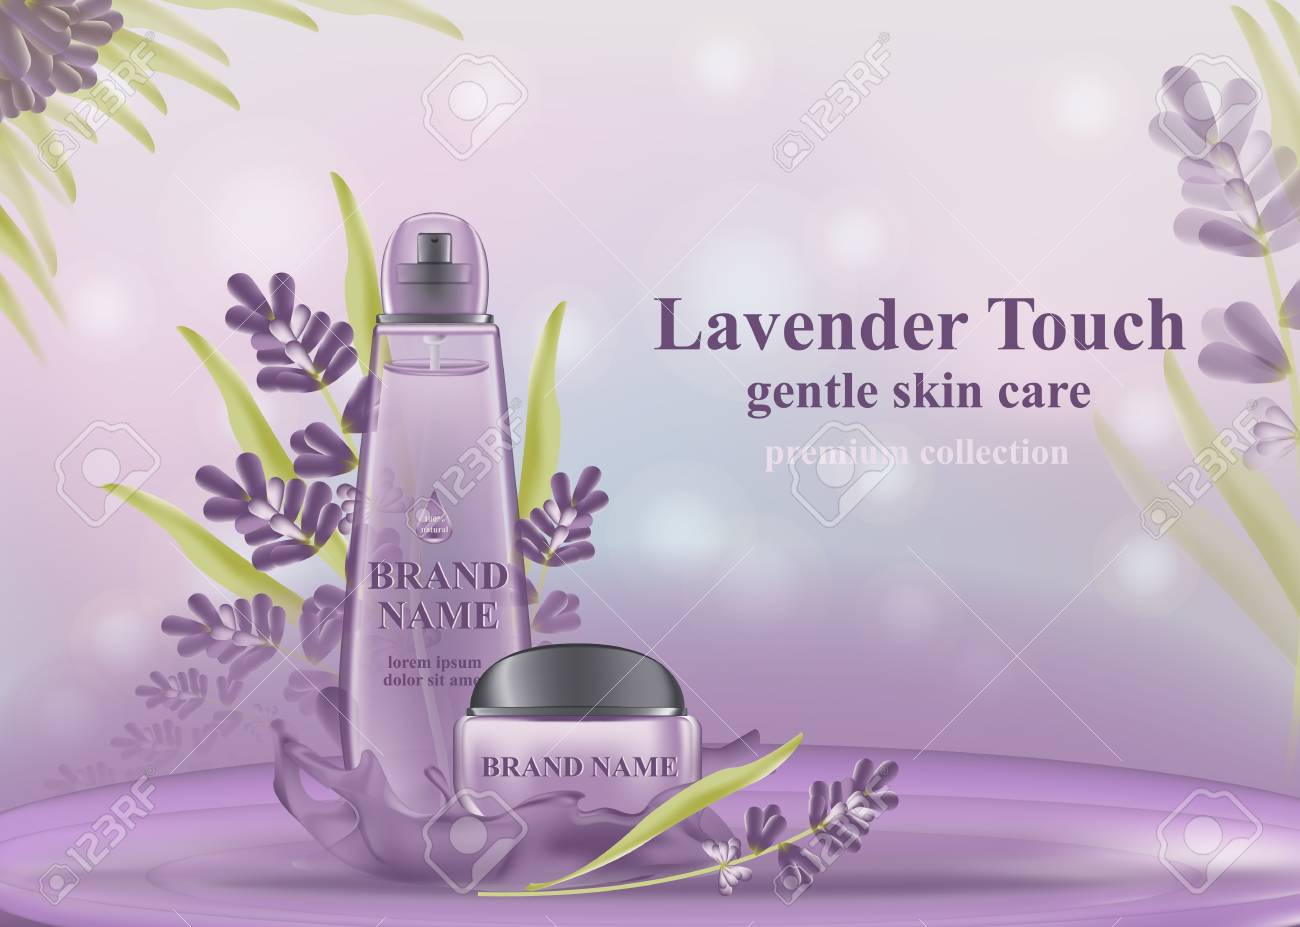 Cosmetic Banner With 3d Realistic Bottles For Skincare Cream Royalty Free Cliparts Vectors And Stock Illustration Image 115606138